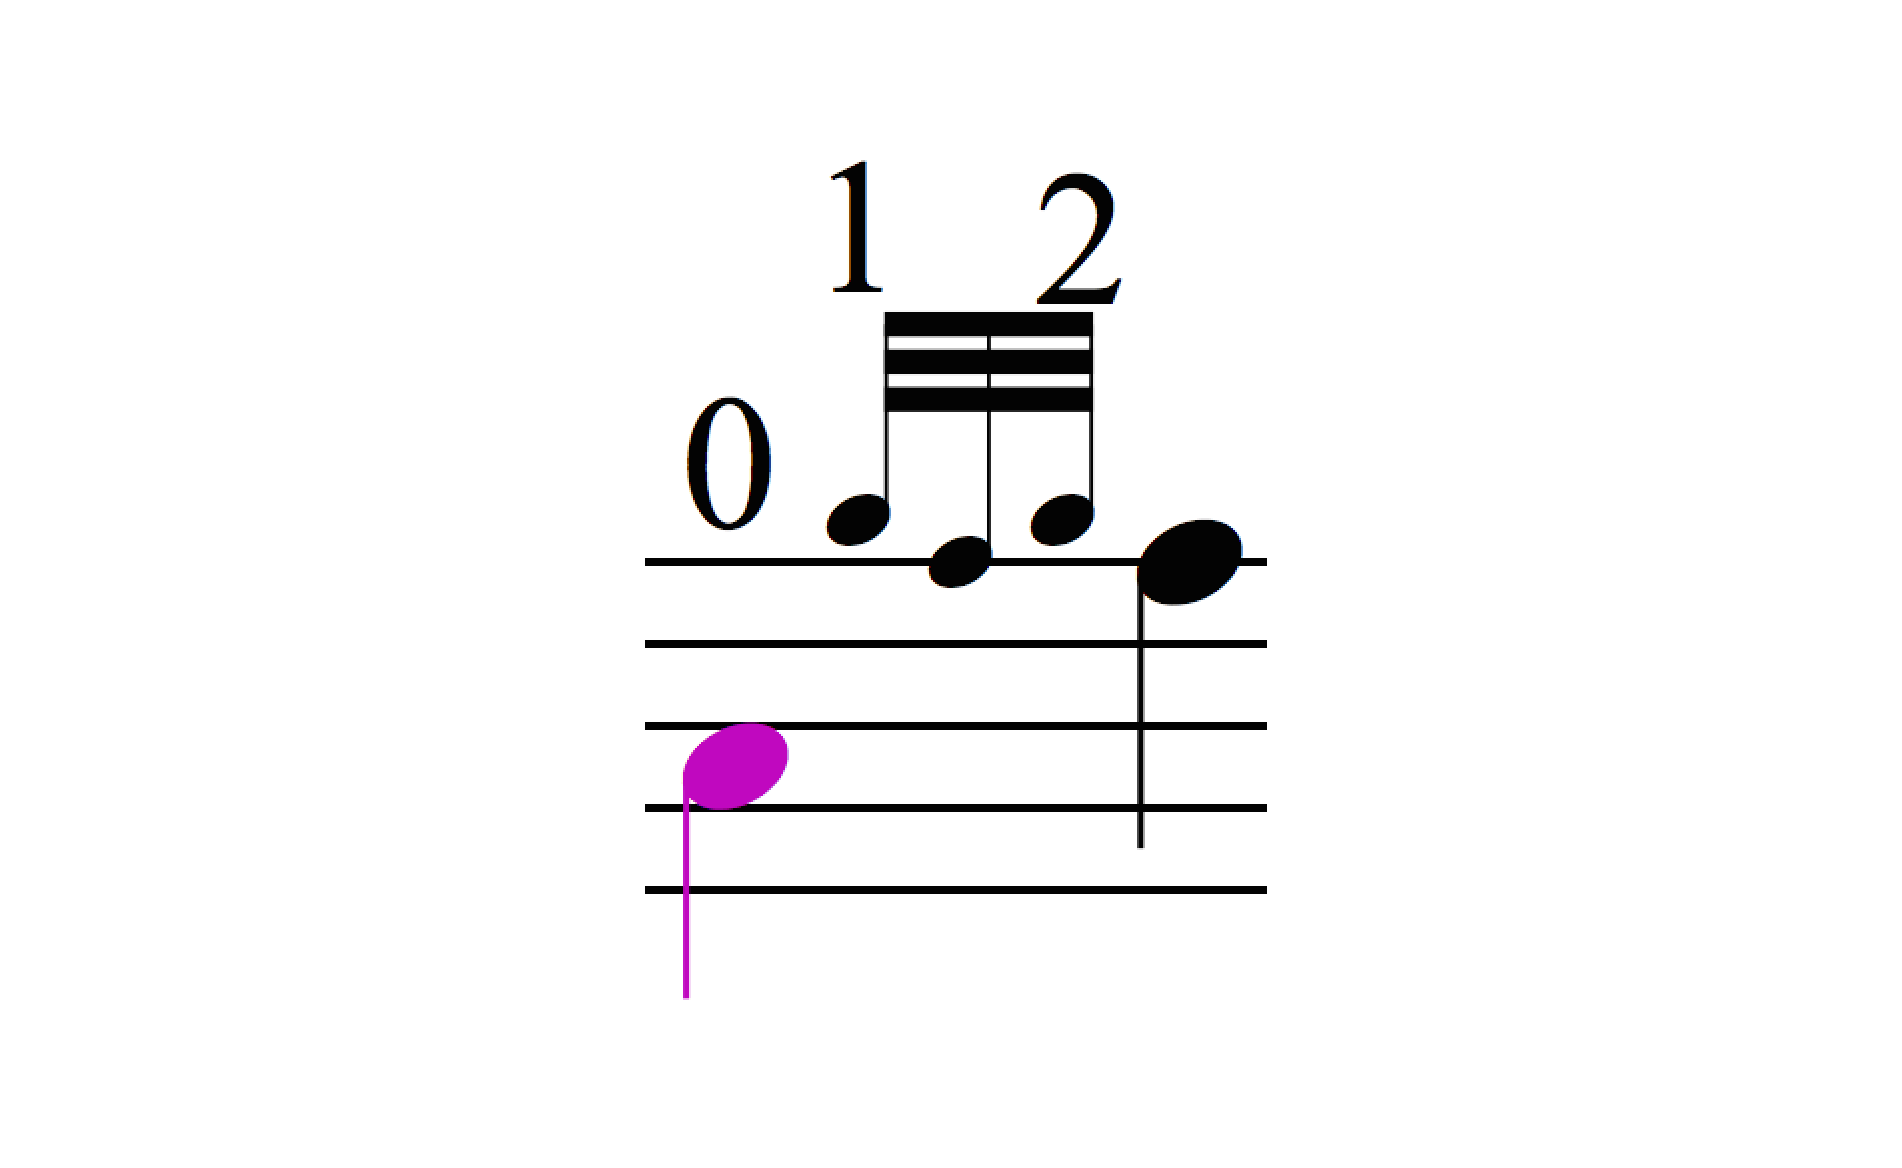 F Doubling